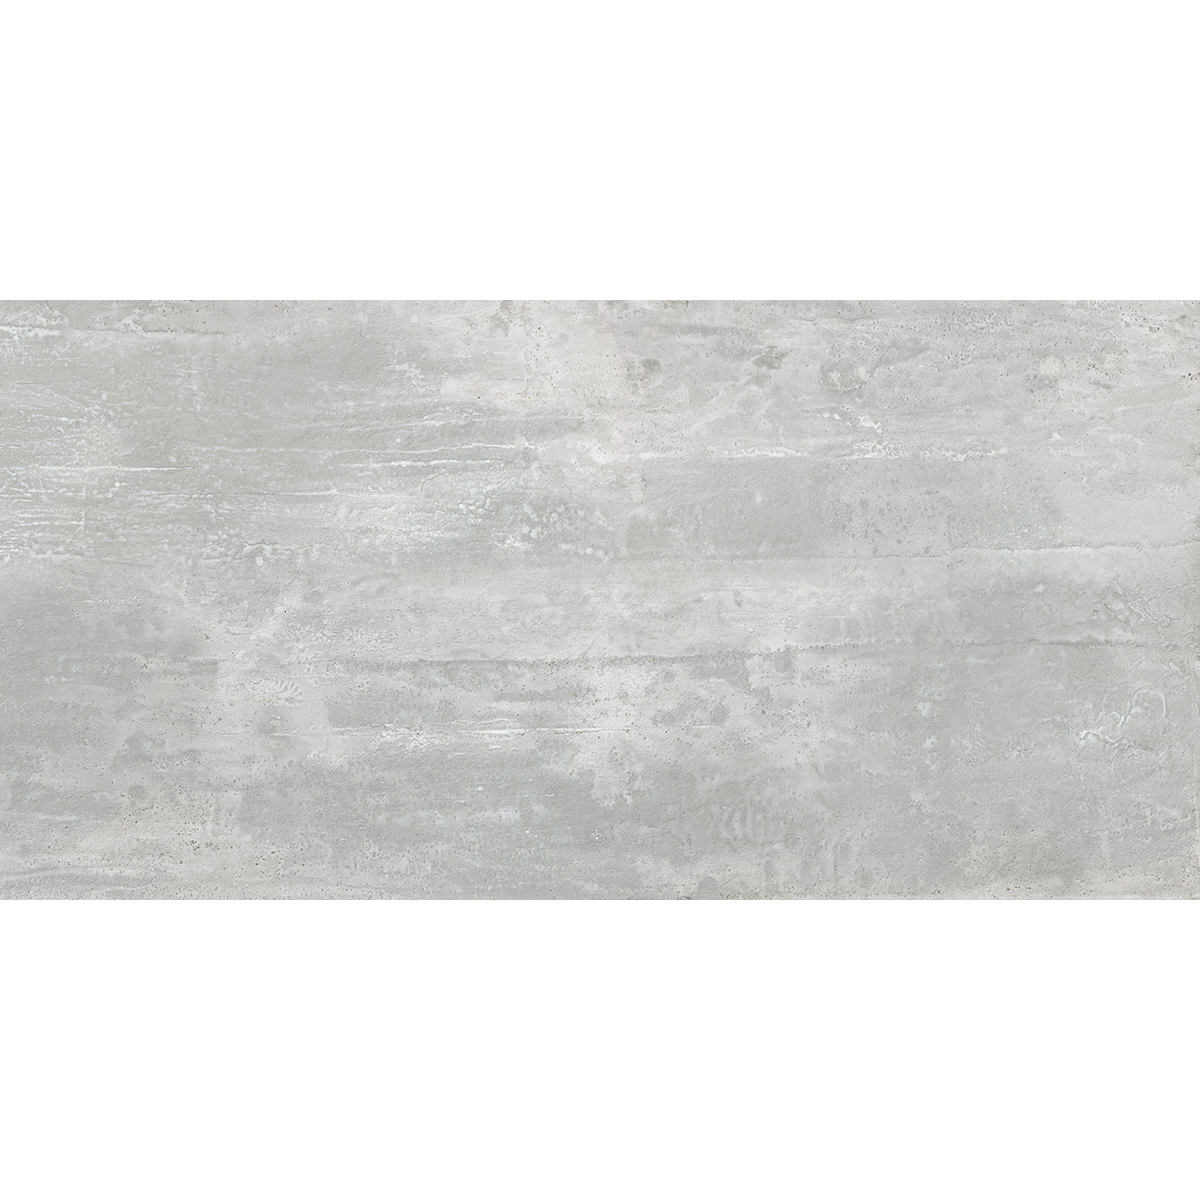 Cemento Grey, matt, 1200x600x11 mm